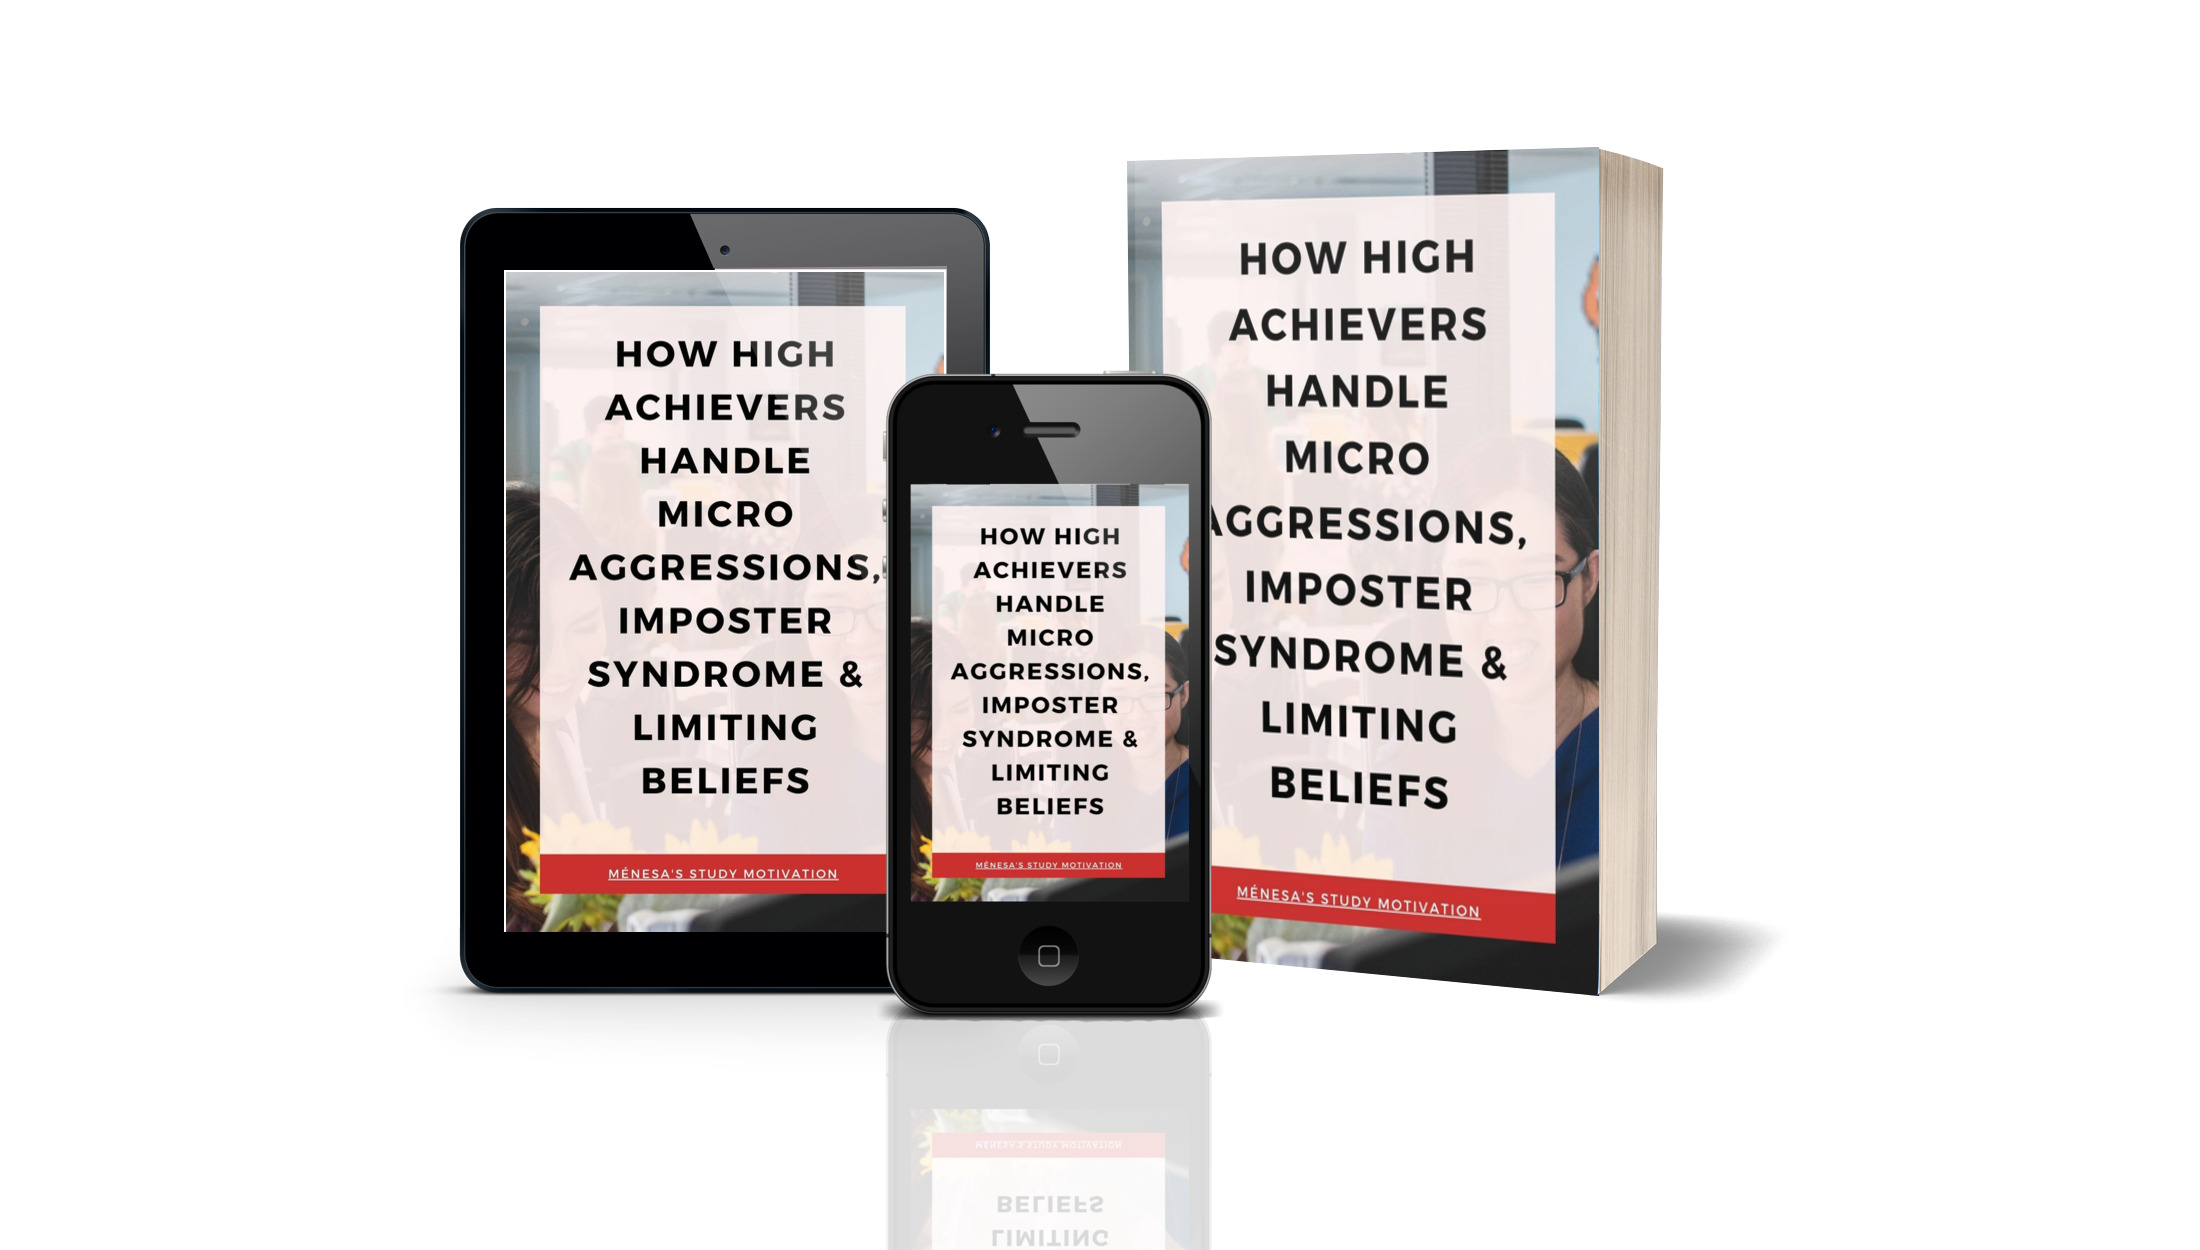 How High Achievers Handle Micro Aggressions, Imposter Syndrome & Limiting Beliefs